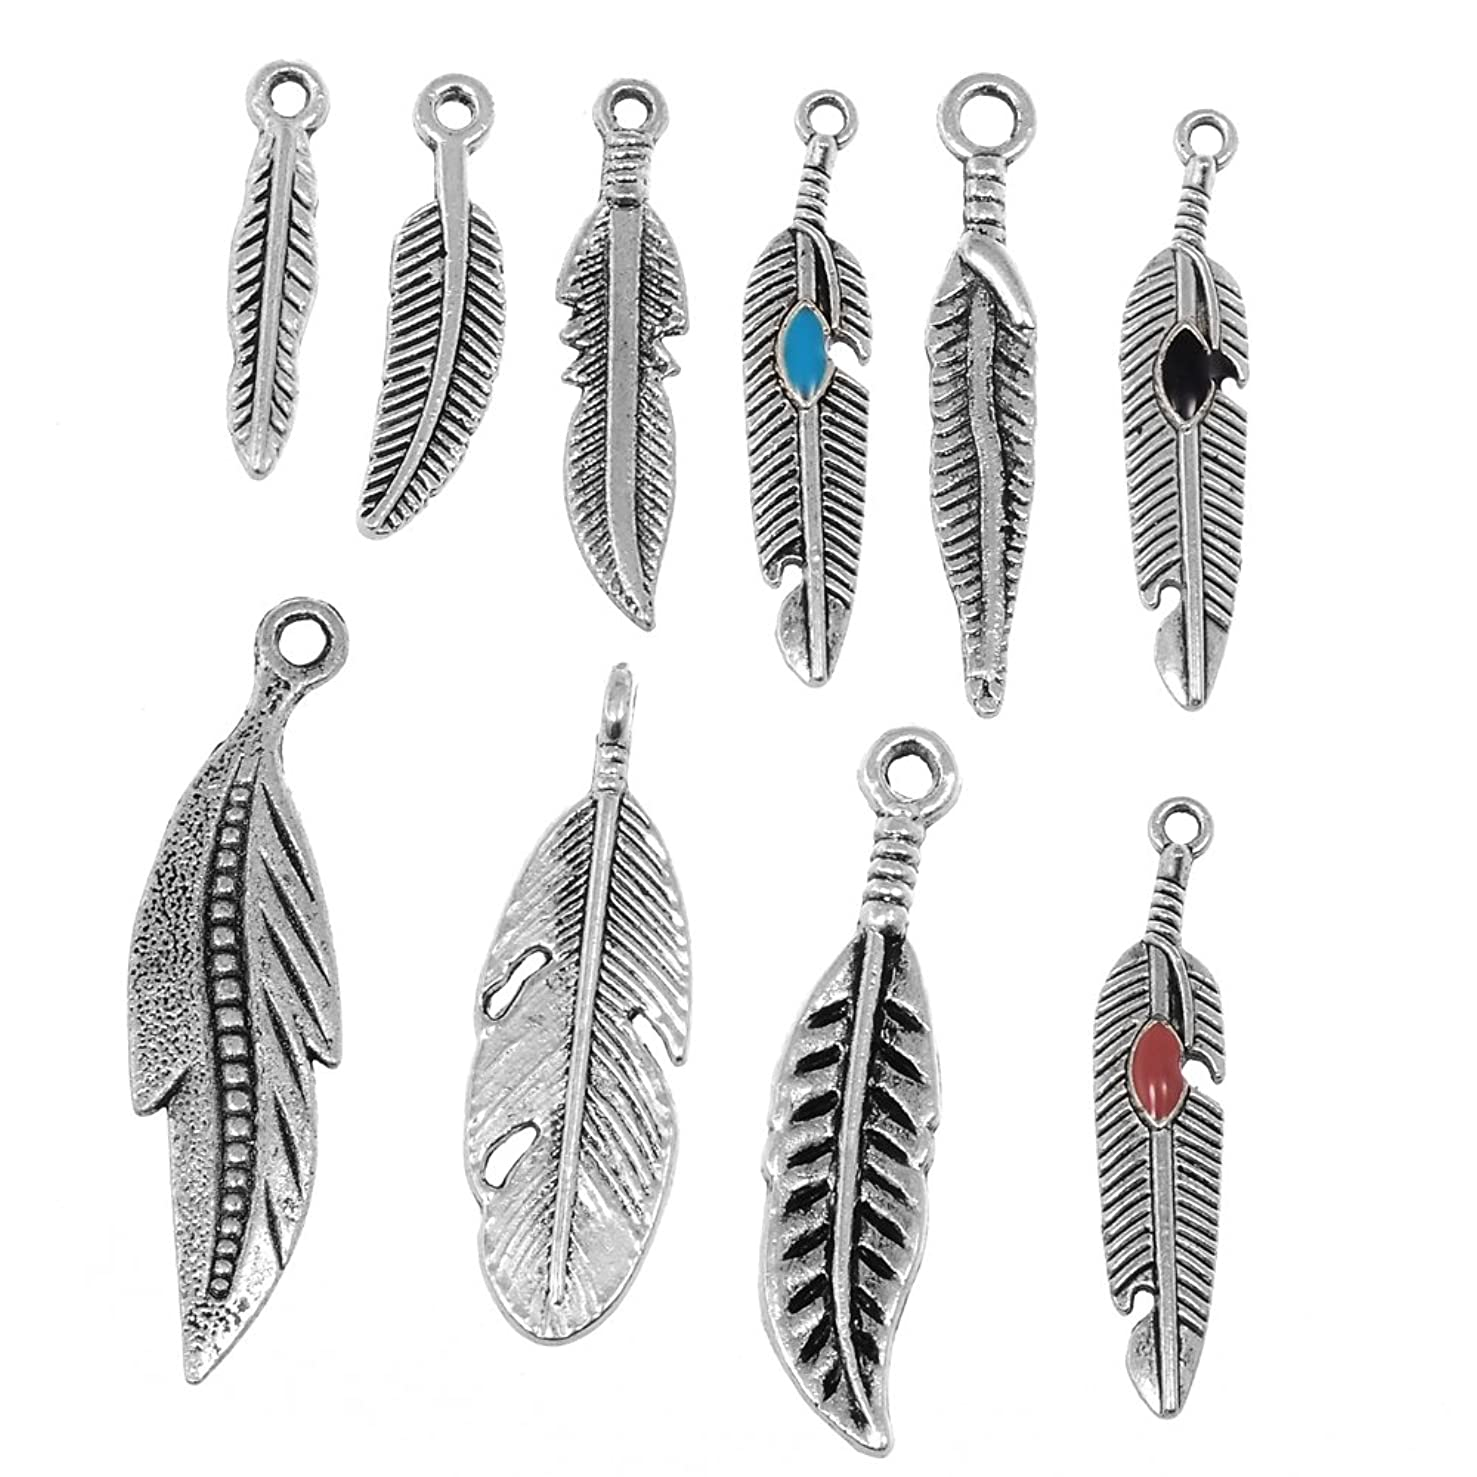 RUBYCA 50PCS Tibetan Silver Color Mix Feather Pendants Charms Bracelet Necklace Making Jewelry